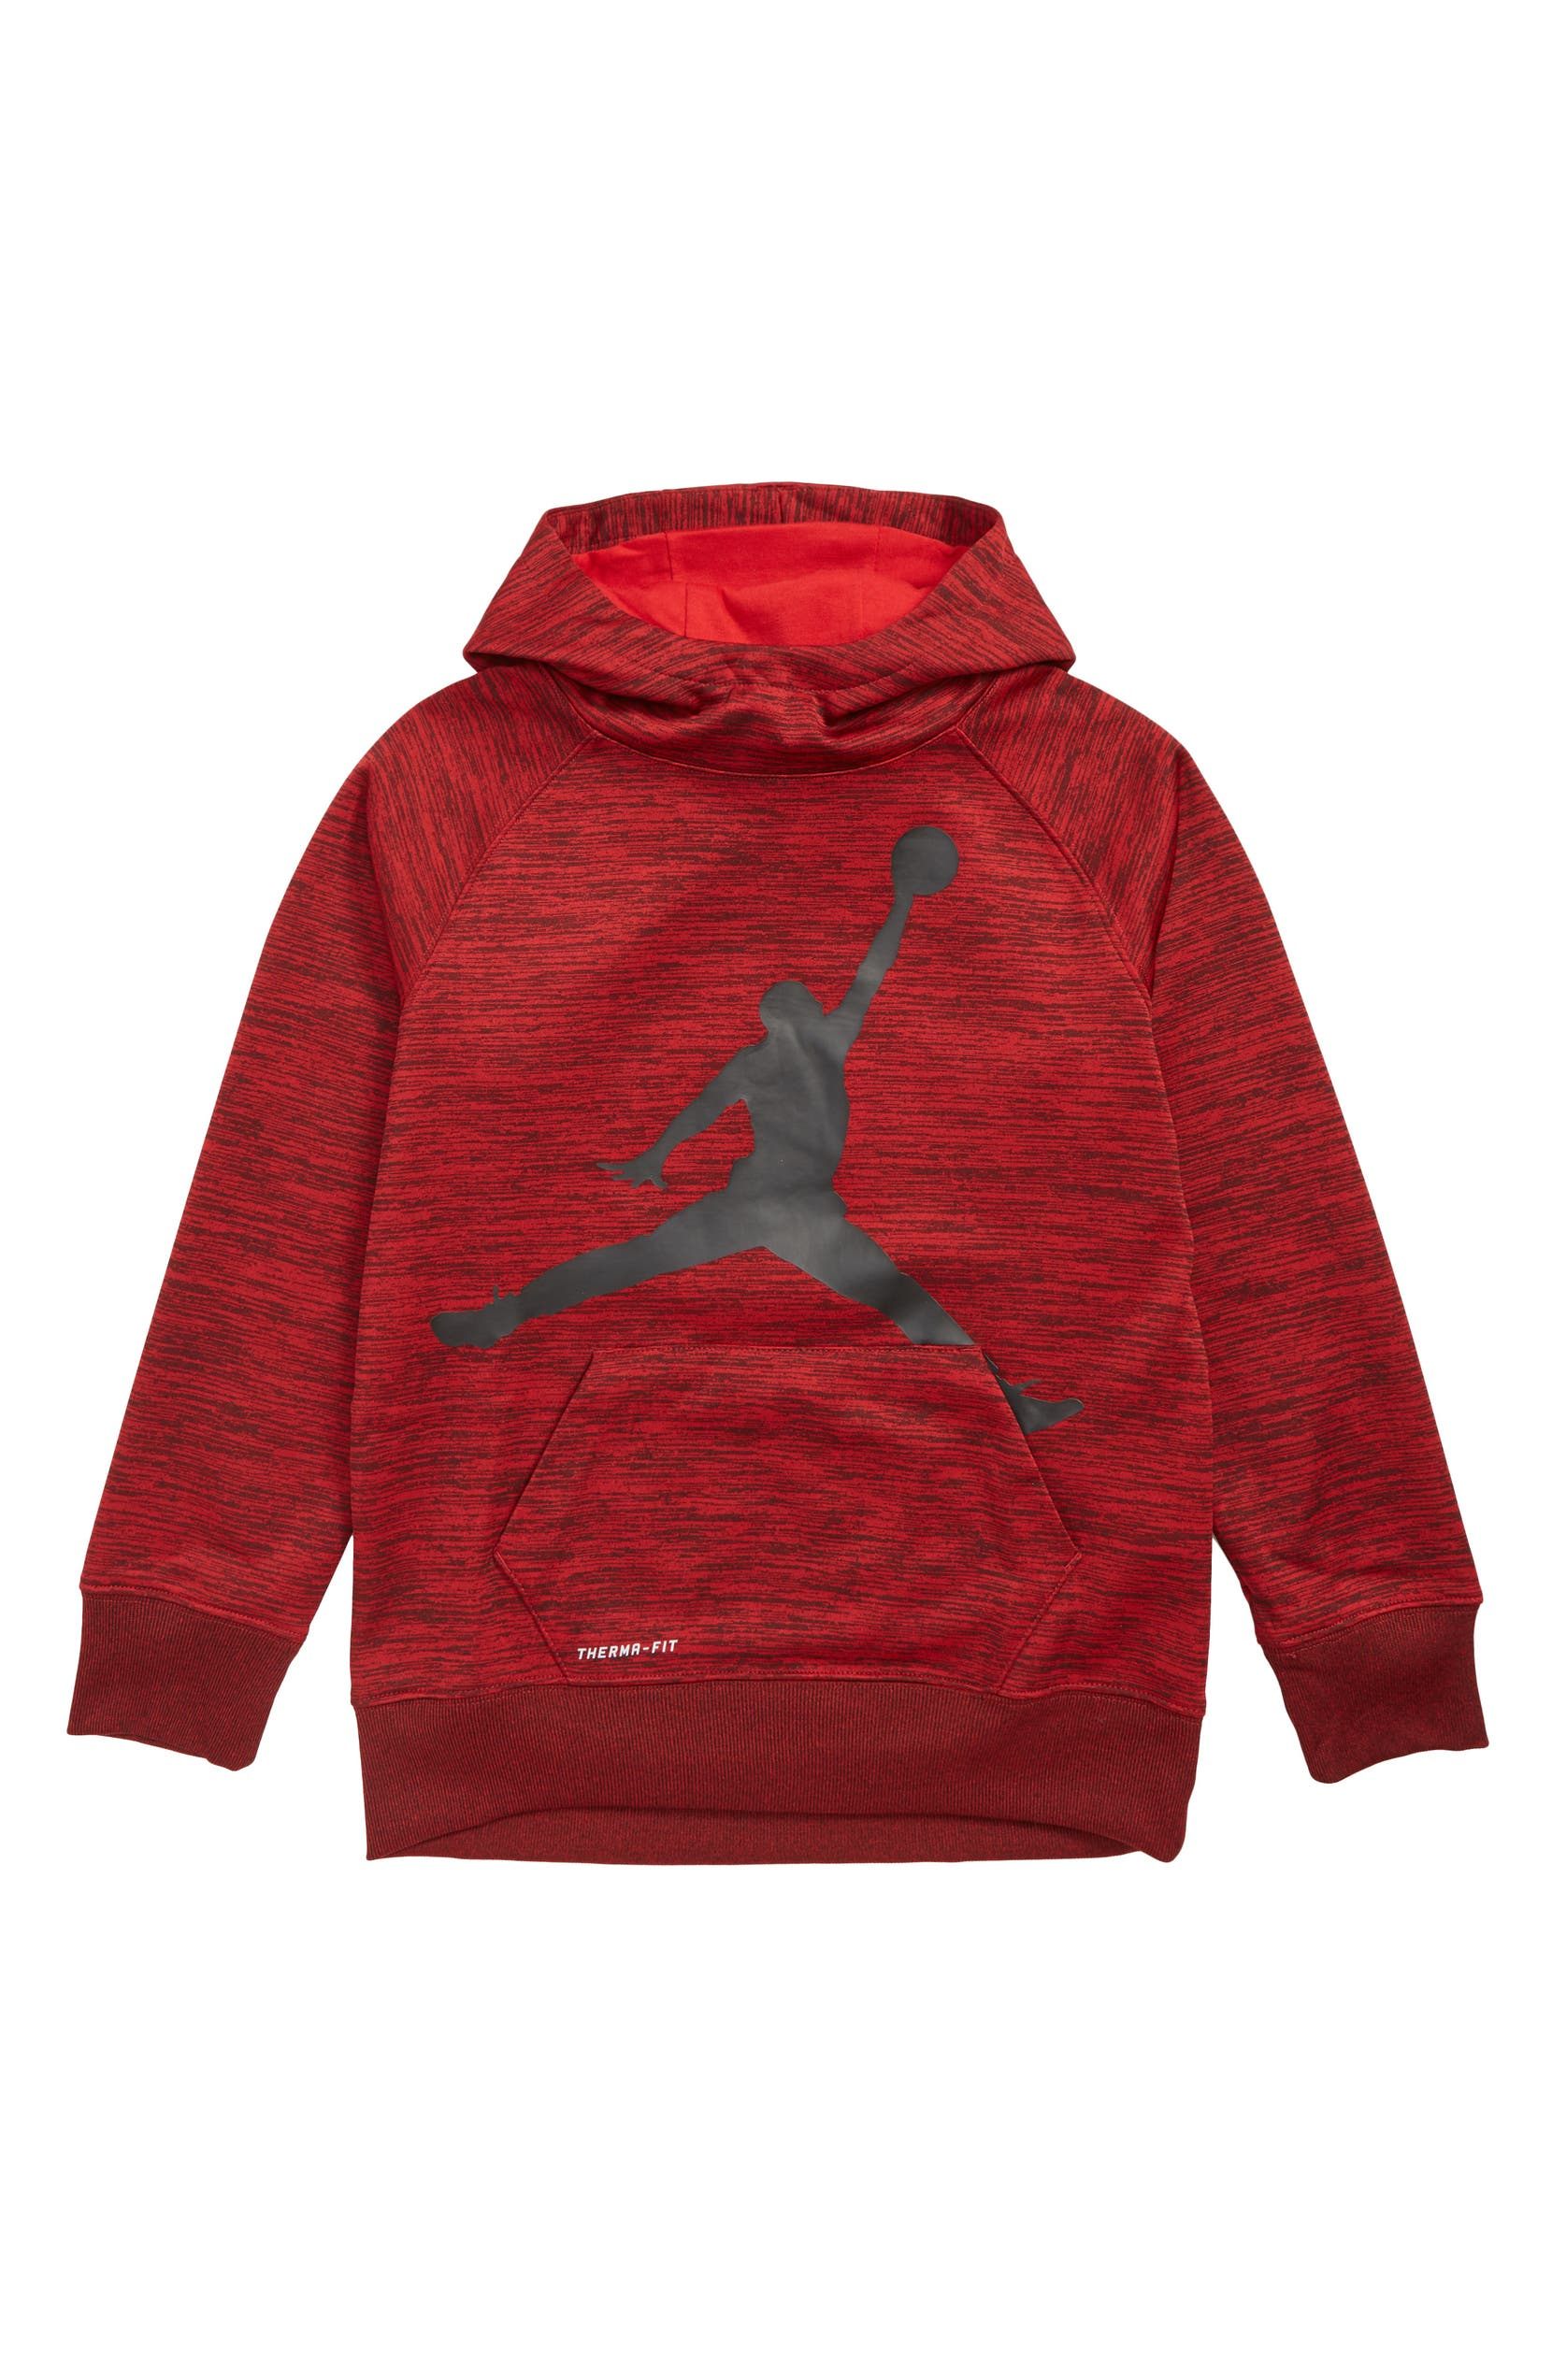 8ffa0b2859d1 Jordan Performance Hoodie (Big Boys)